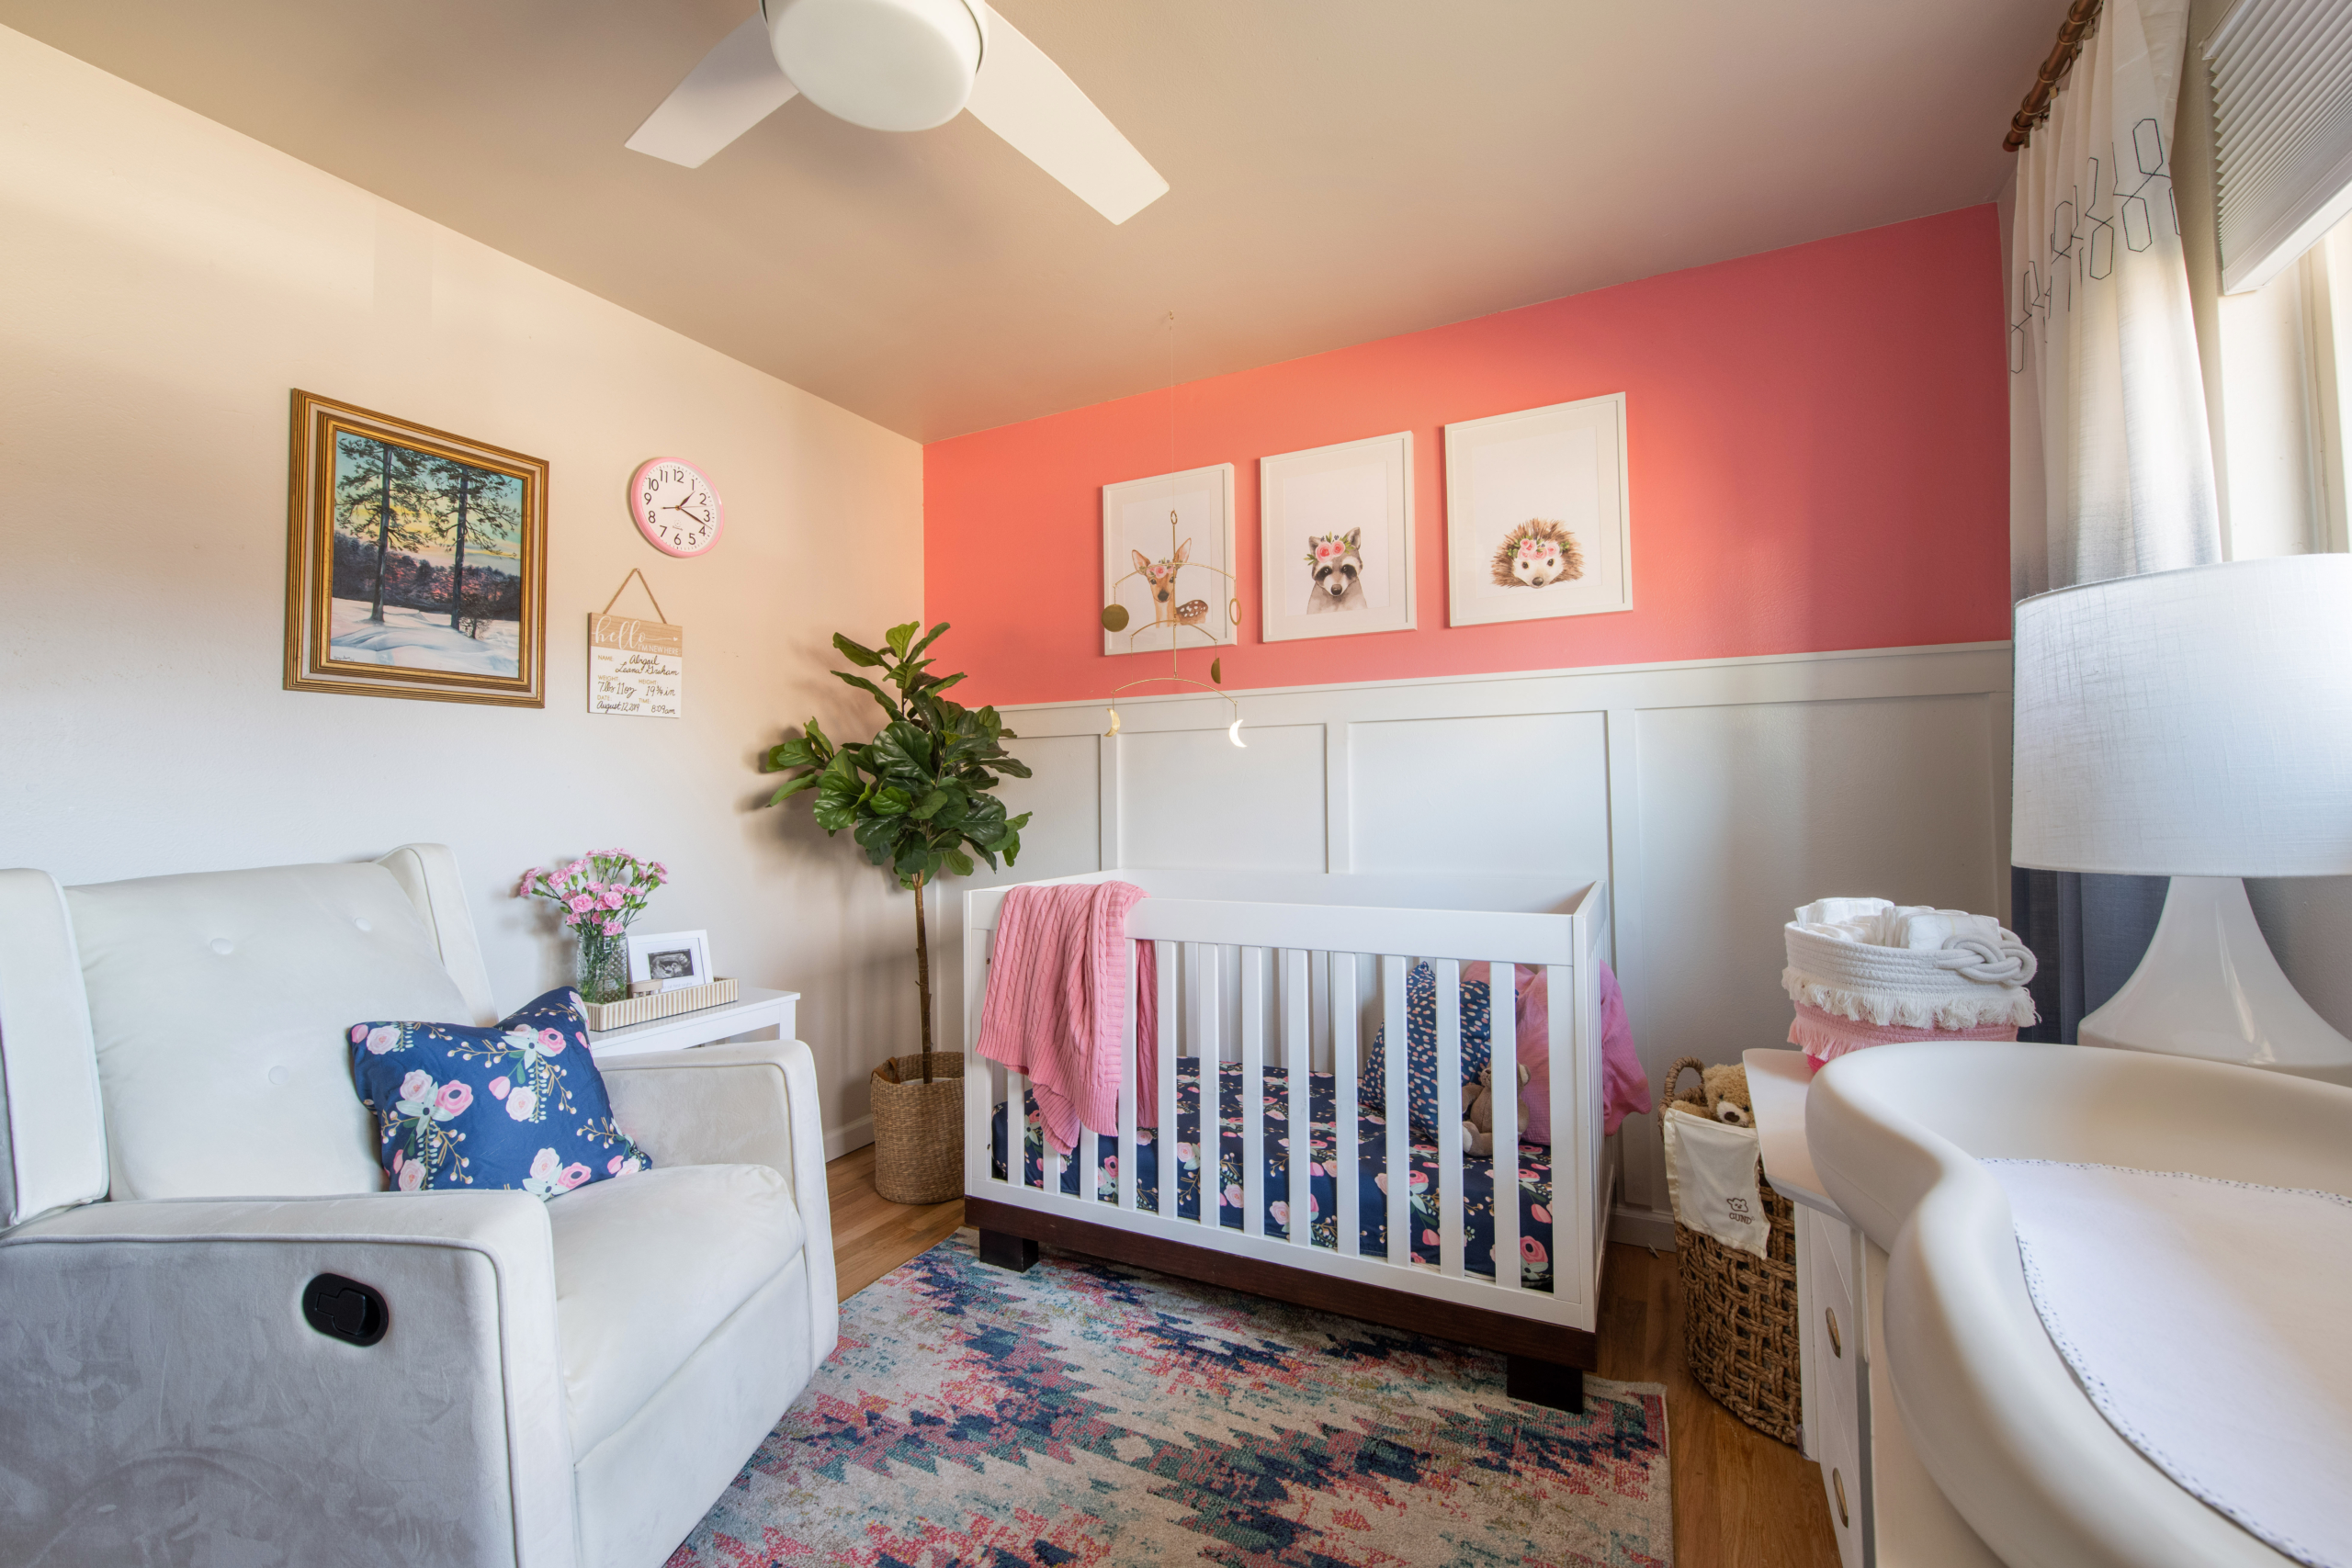 Nursery pink and blue theme with rocking chair and crib